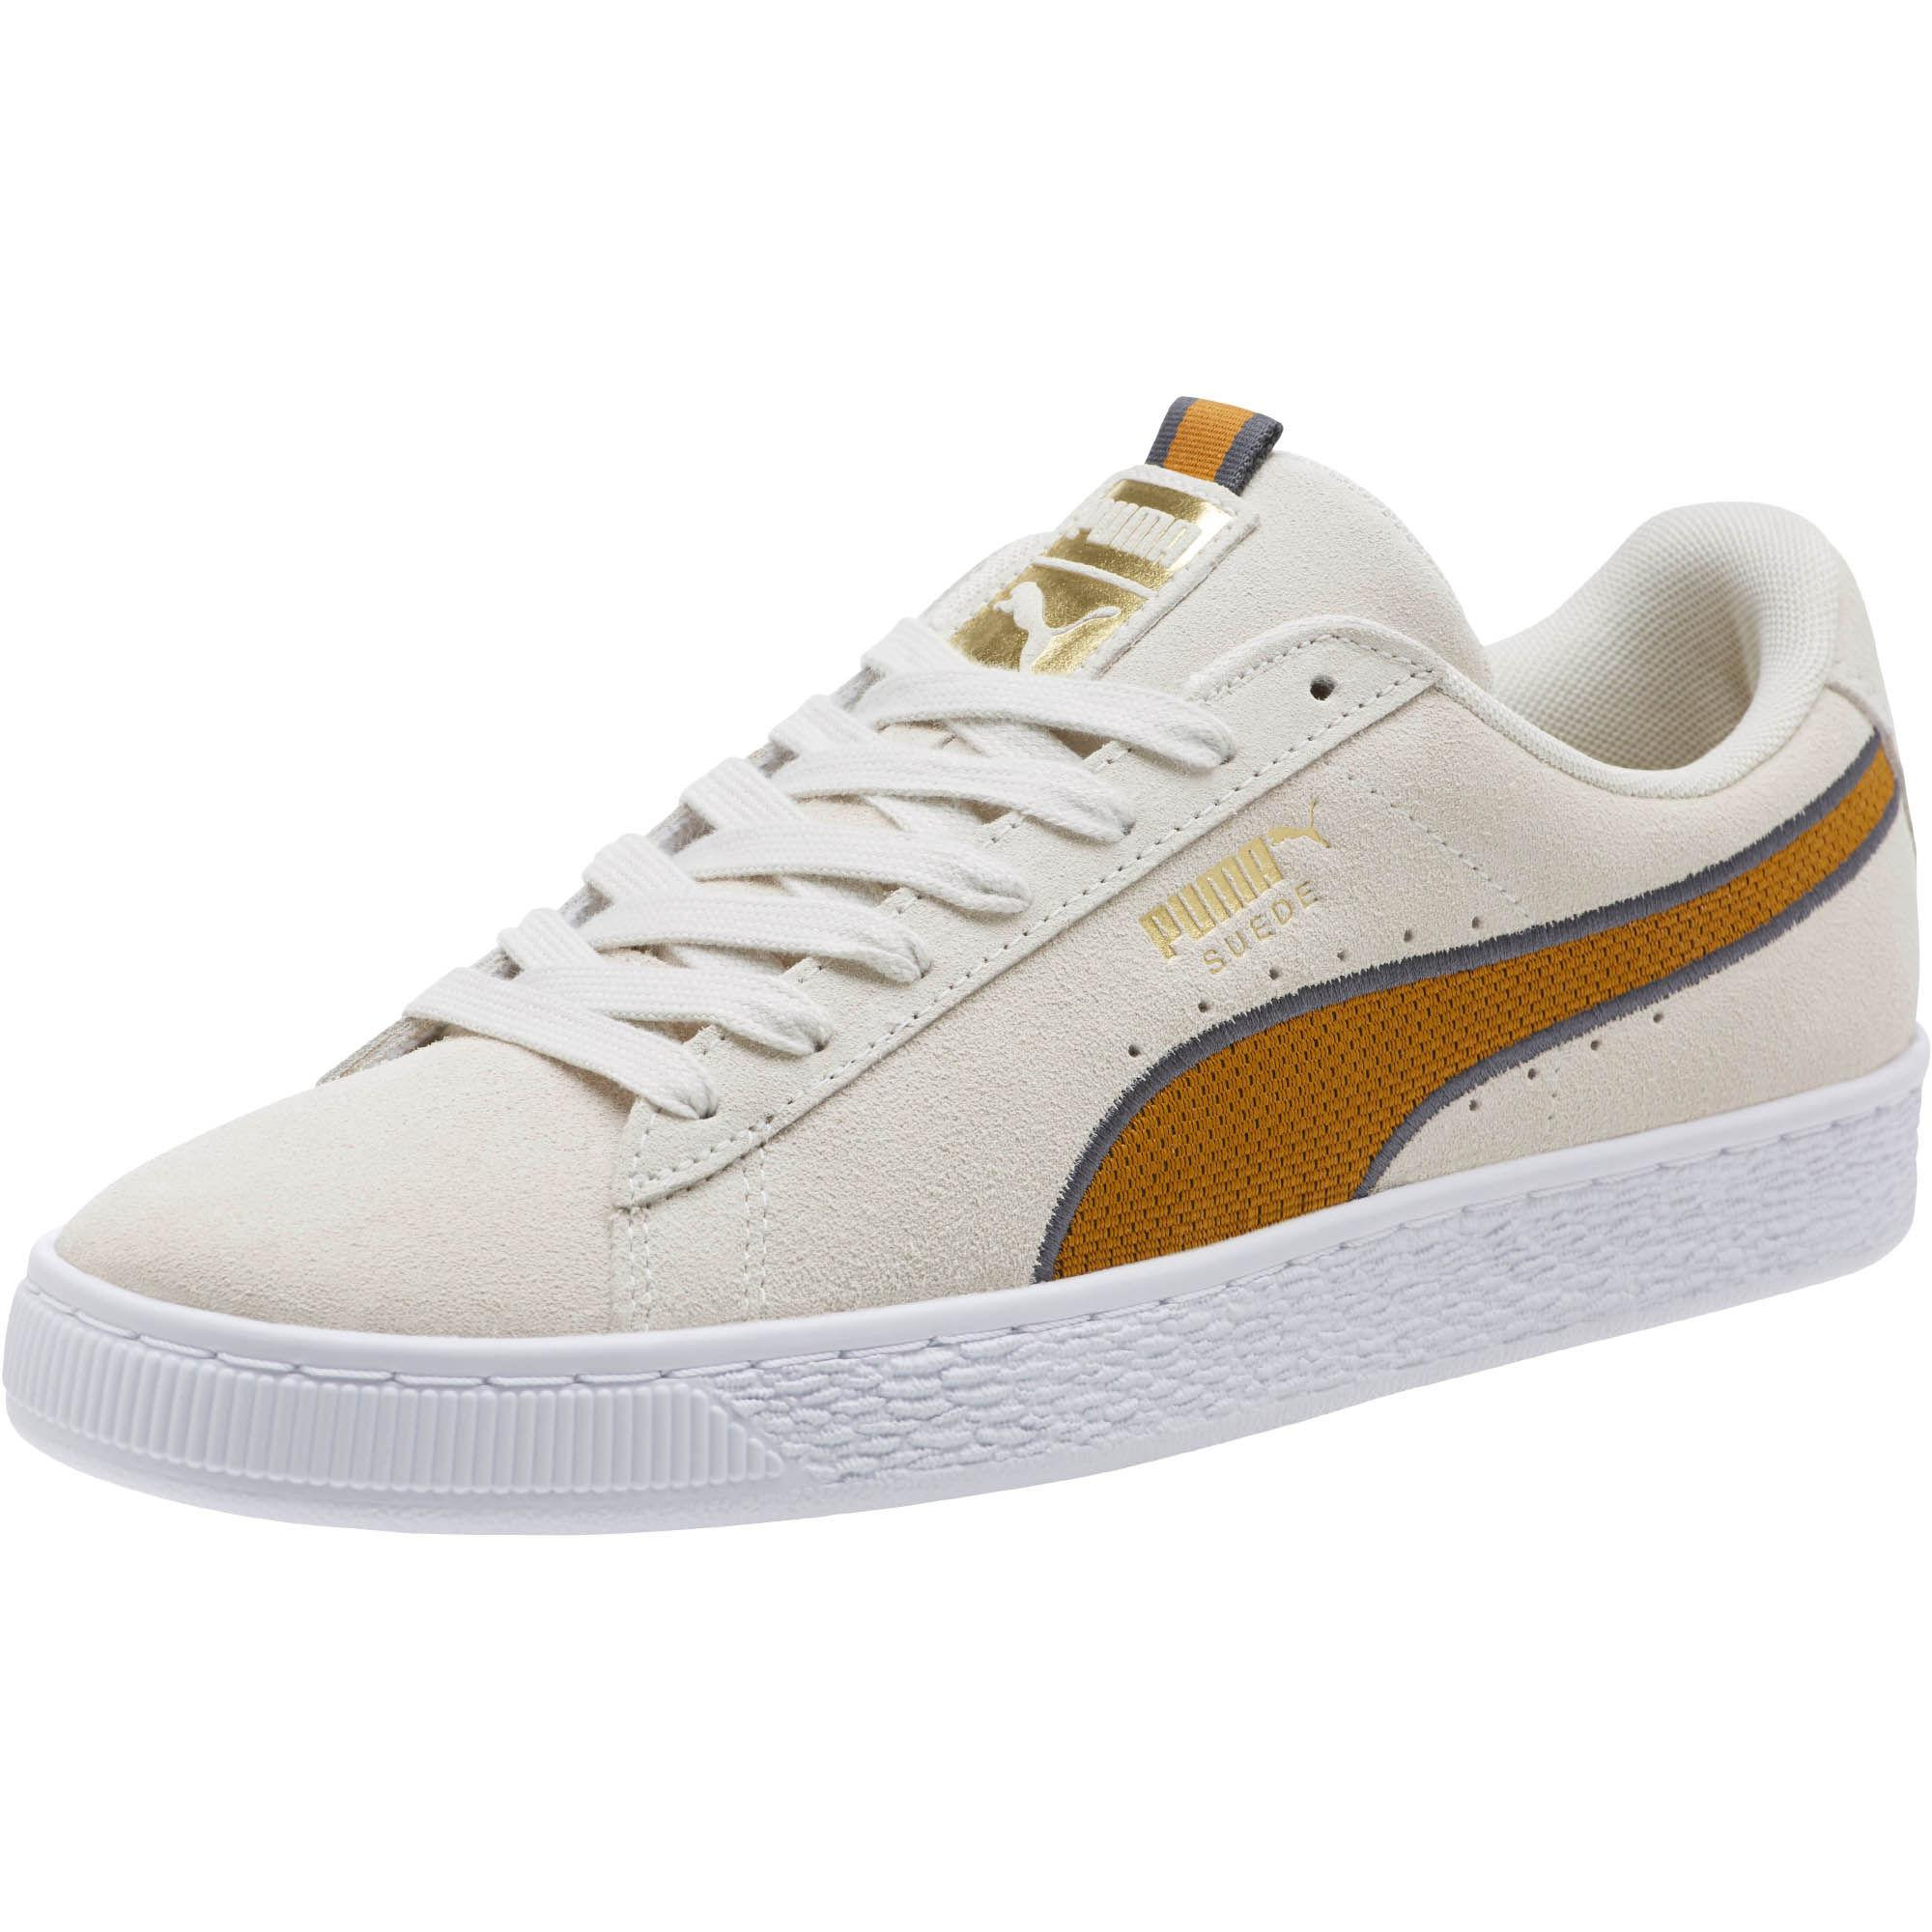 Lyst Puma Suede Classic Sport Stripes for for for Uomo 5c8bc0